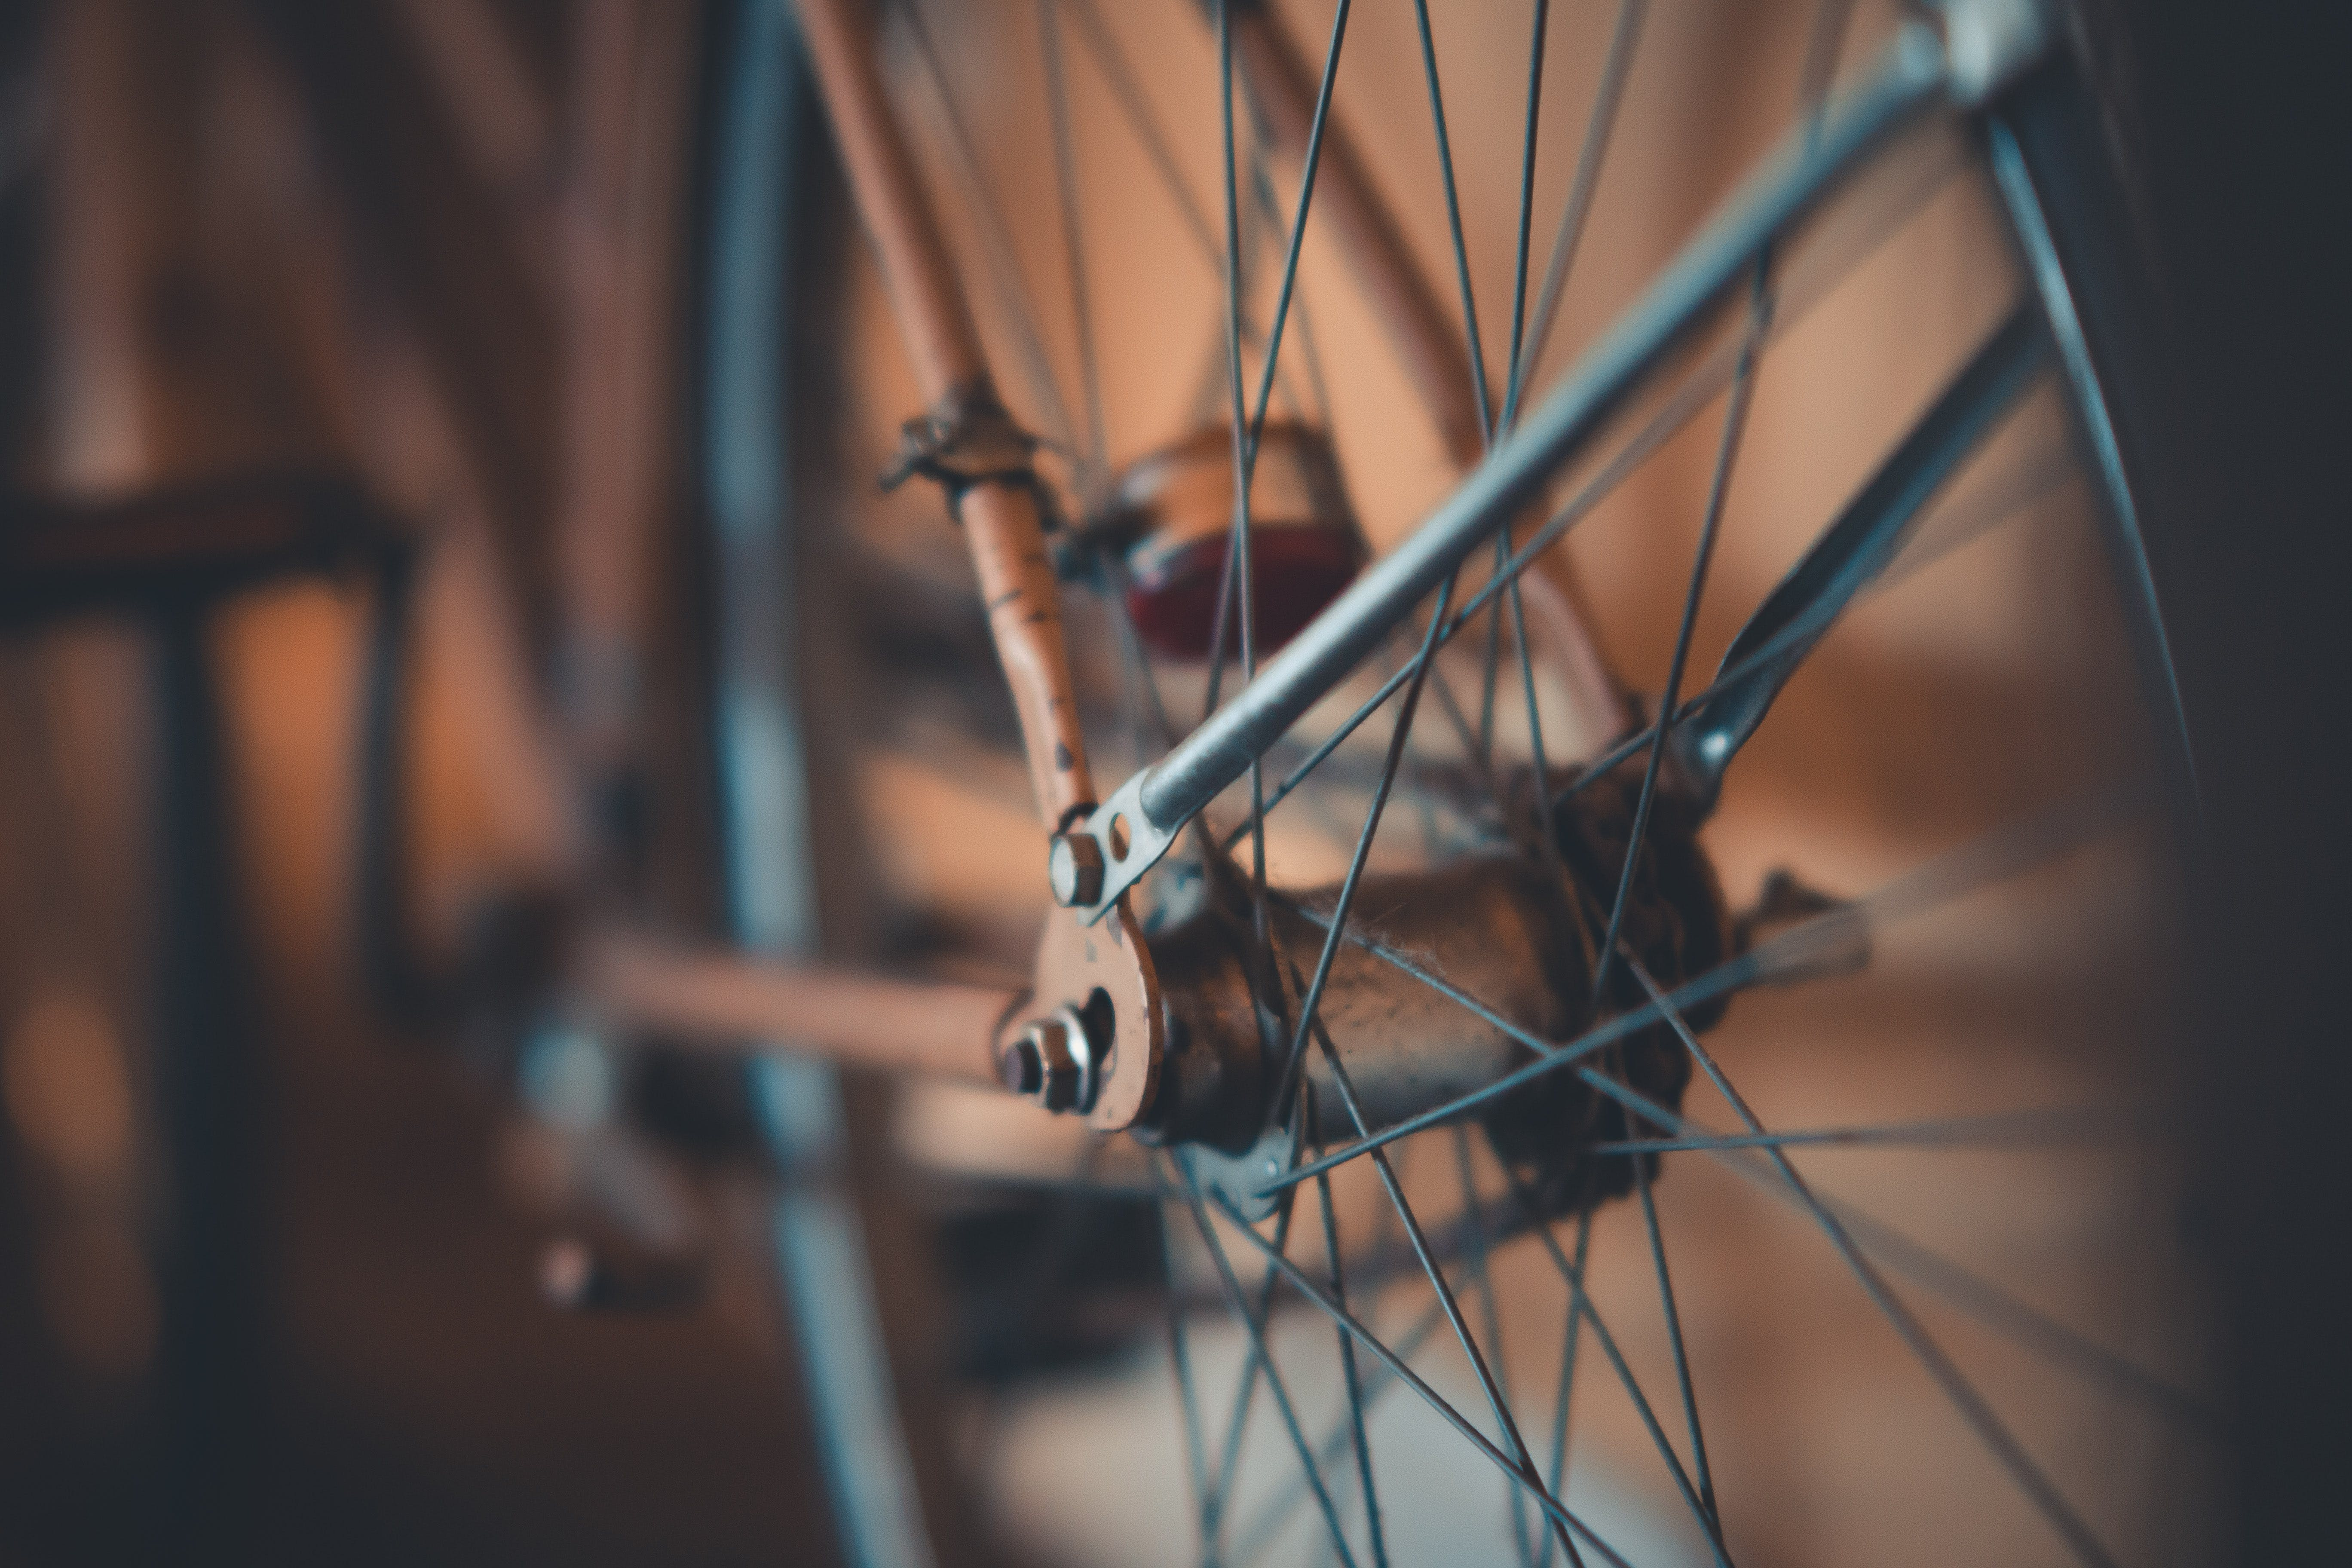 Selective Focus Photography of Bicycle Wheel